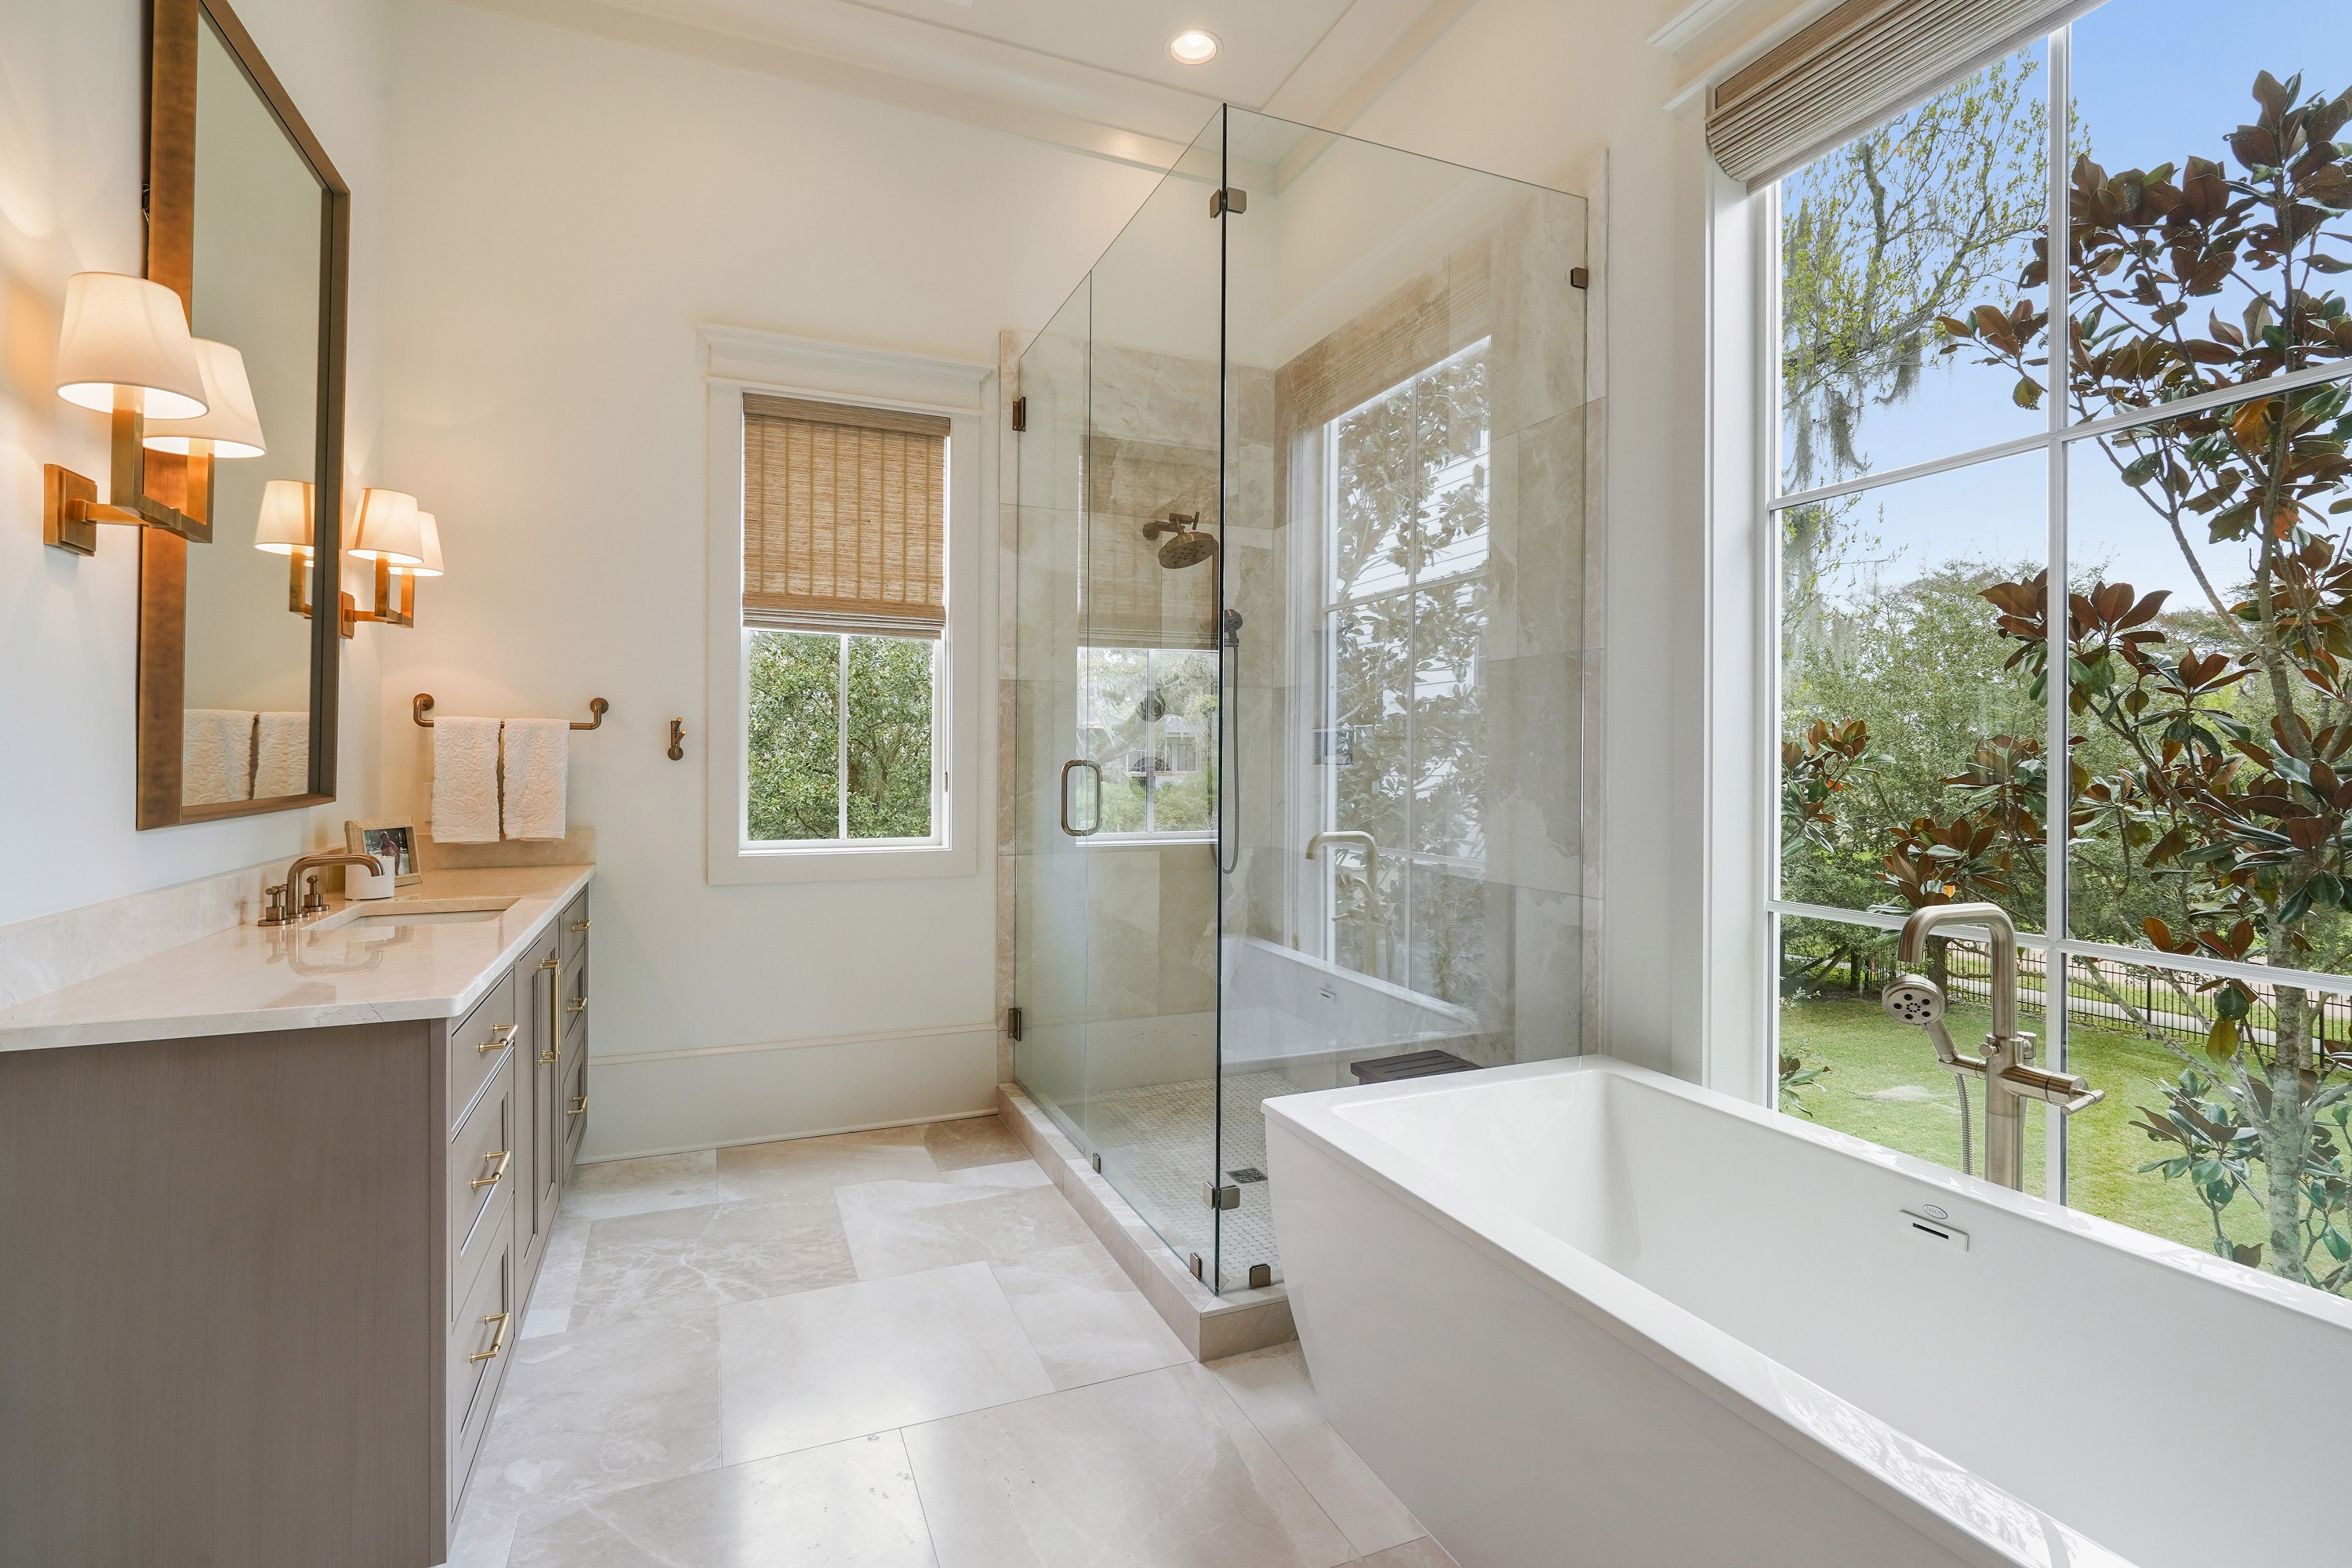 Transitional bath showing custom cabinetry